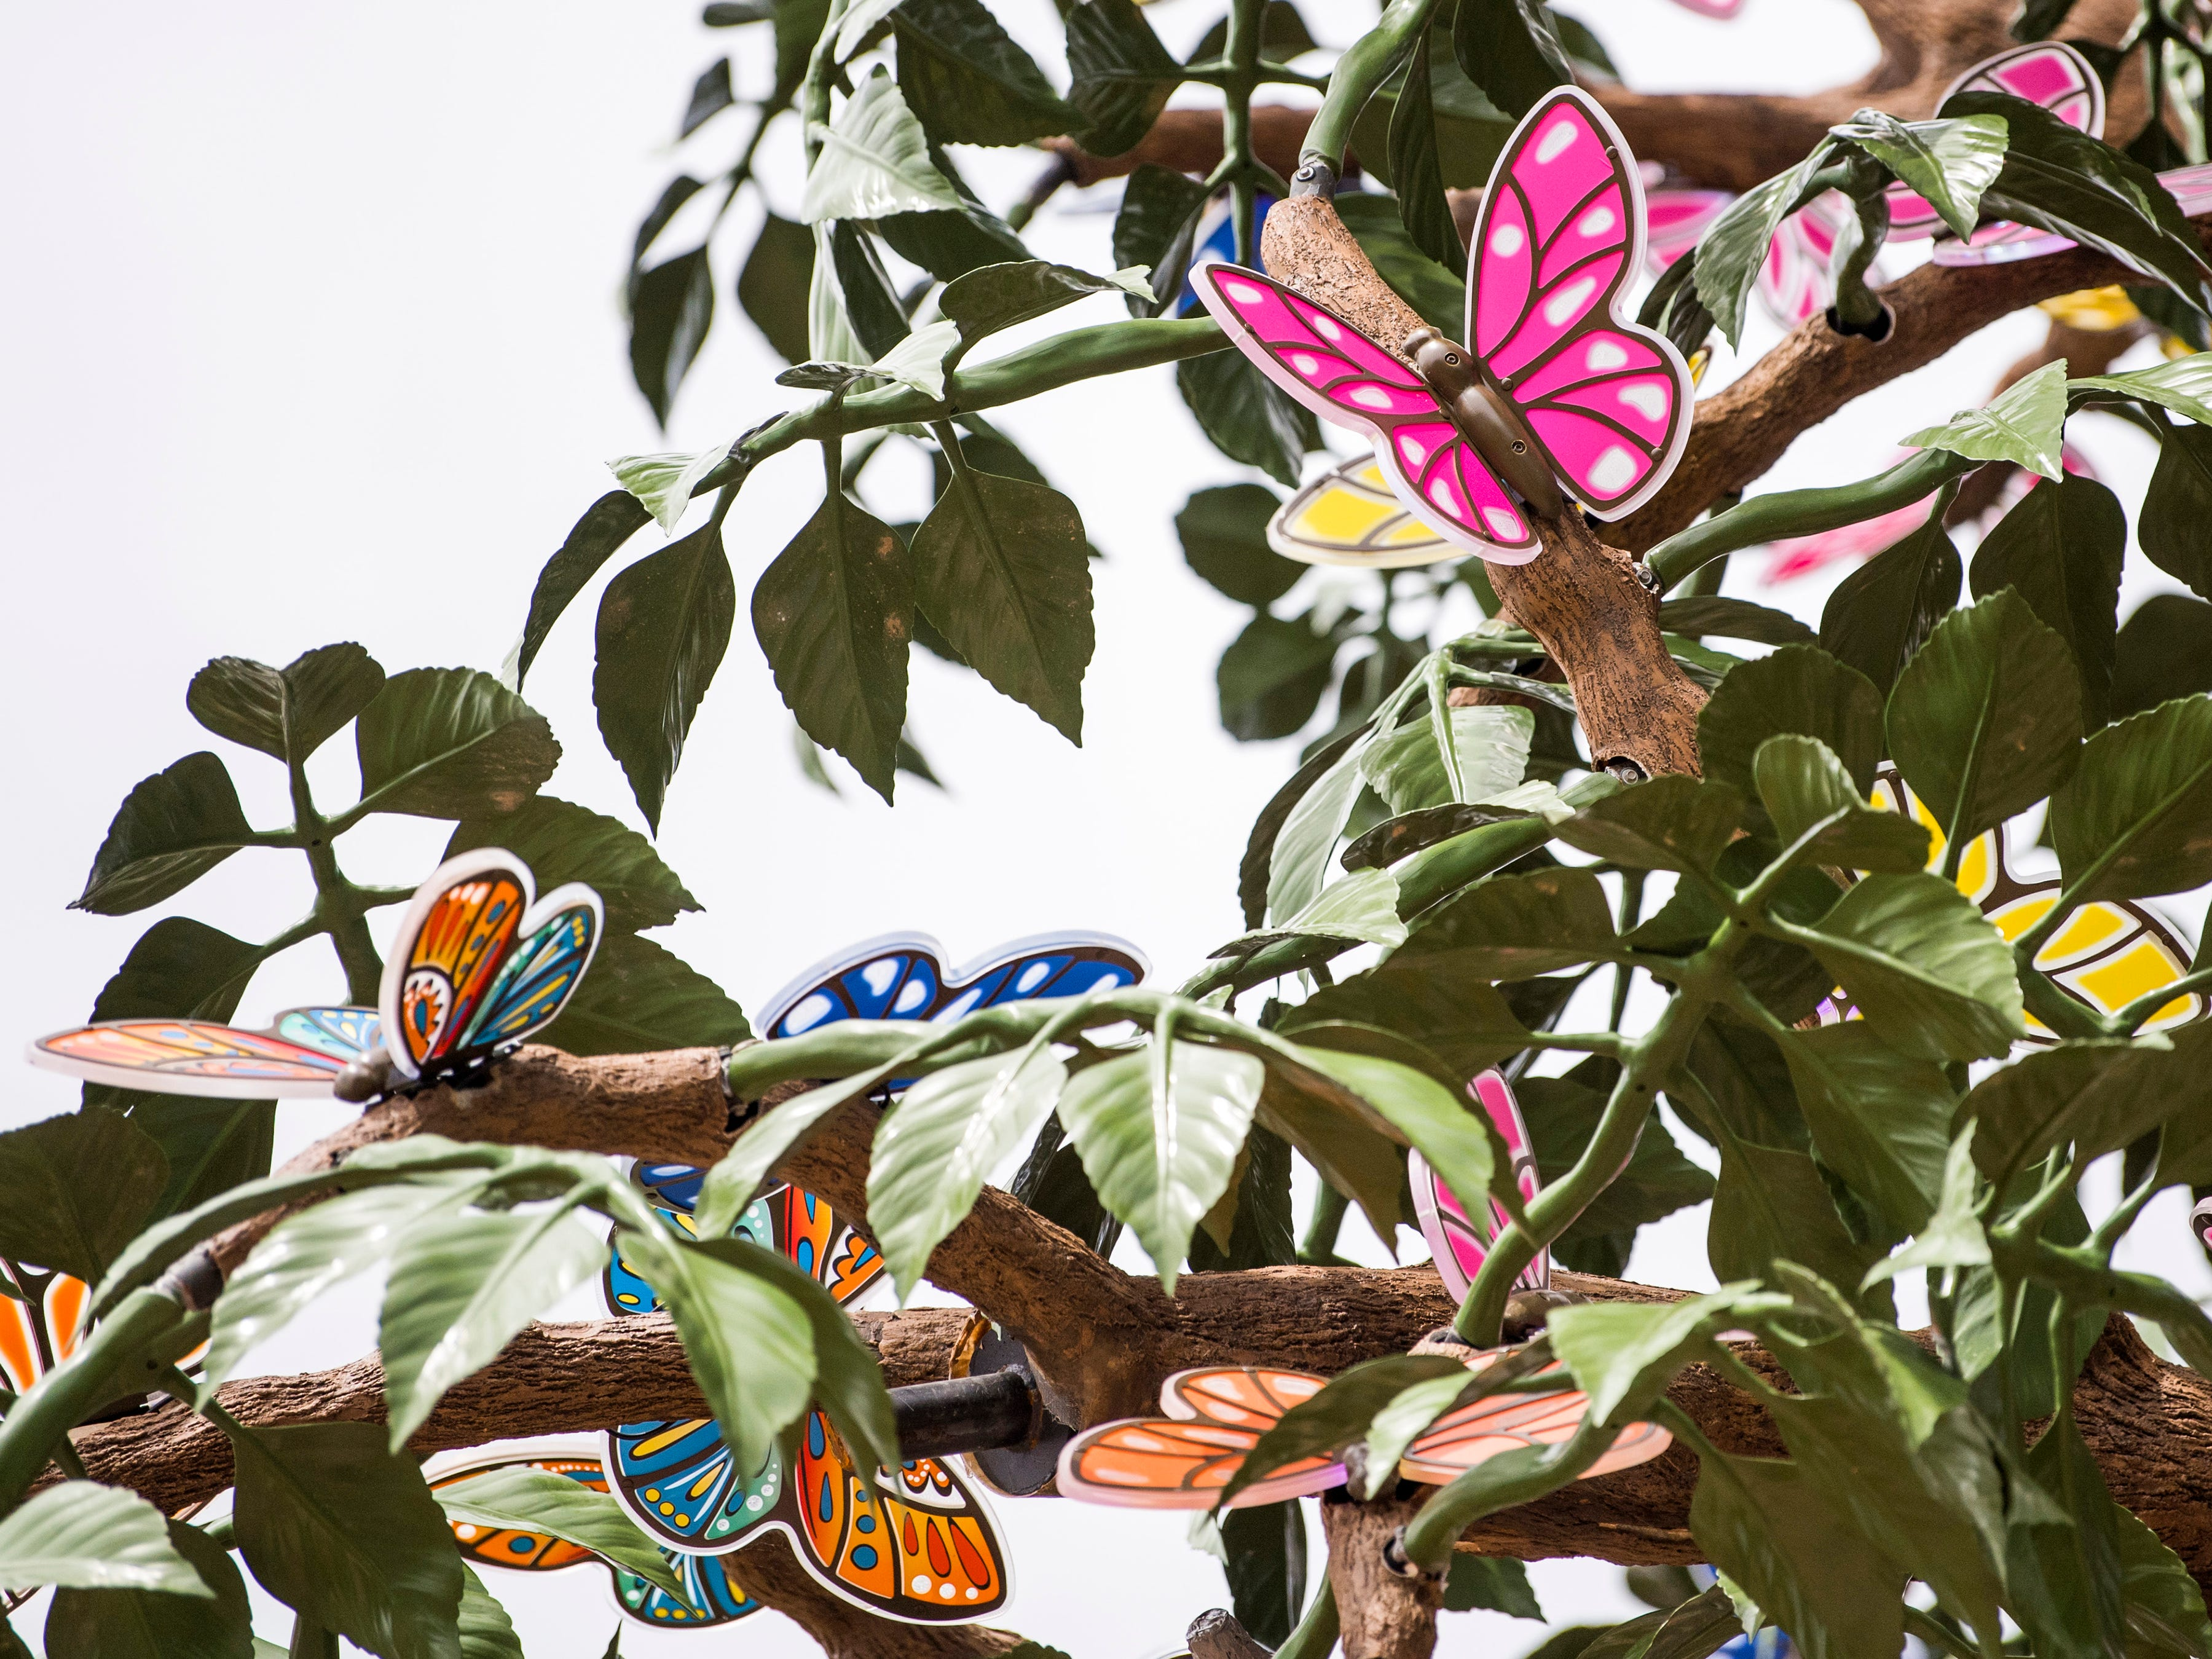 Butterflies on the Wildwood Tree during the grand opening of Dollywood's new Wildwood Grove expansion on Friday, May 10, 2019.